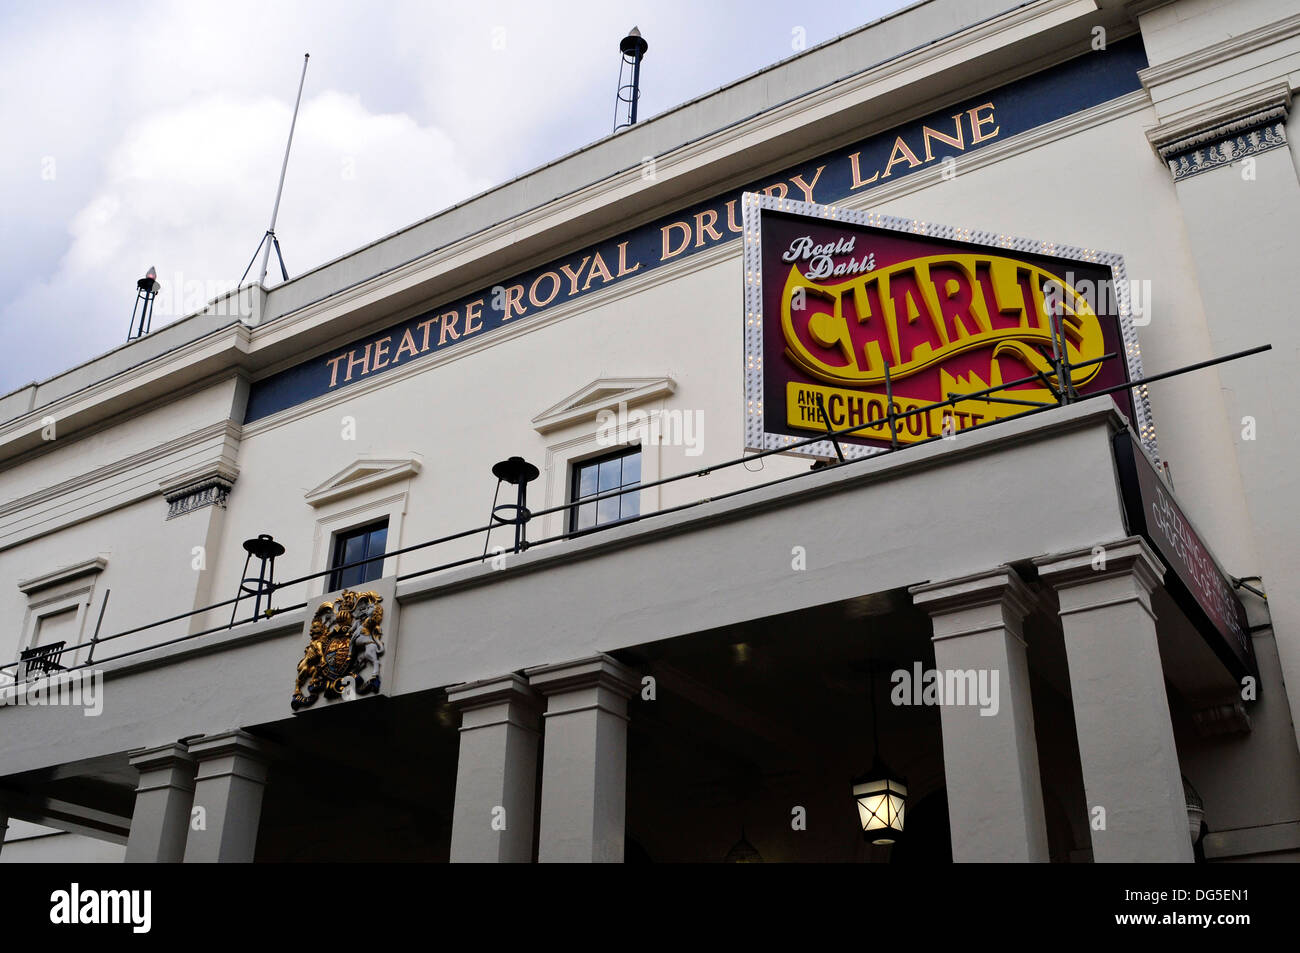 A close view of the theatre royal Drury Lane, London, UK - Stock Image